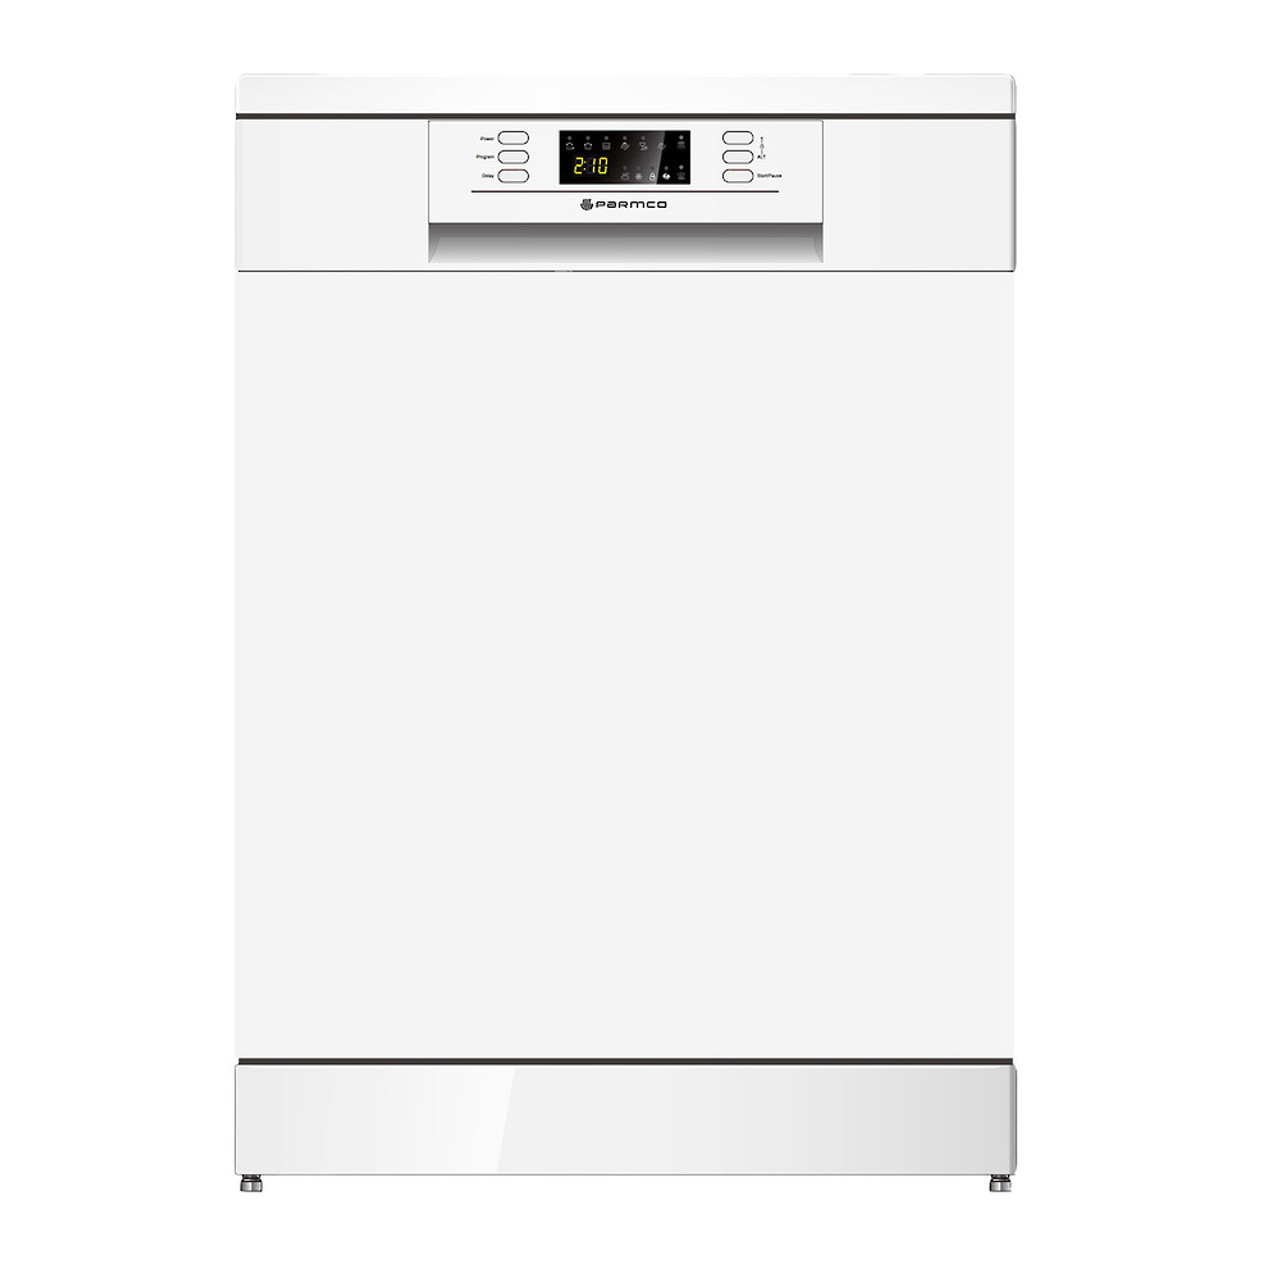 PARMCO 600mm Freestanding Dishwasher, LED Display, White